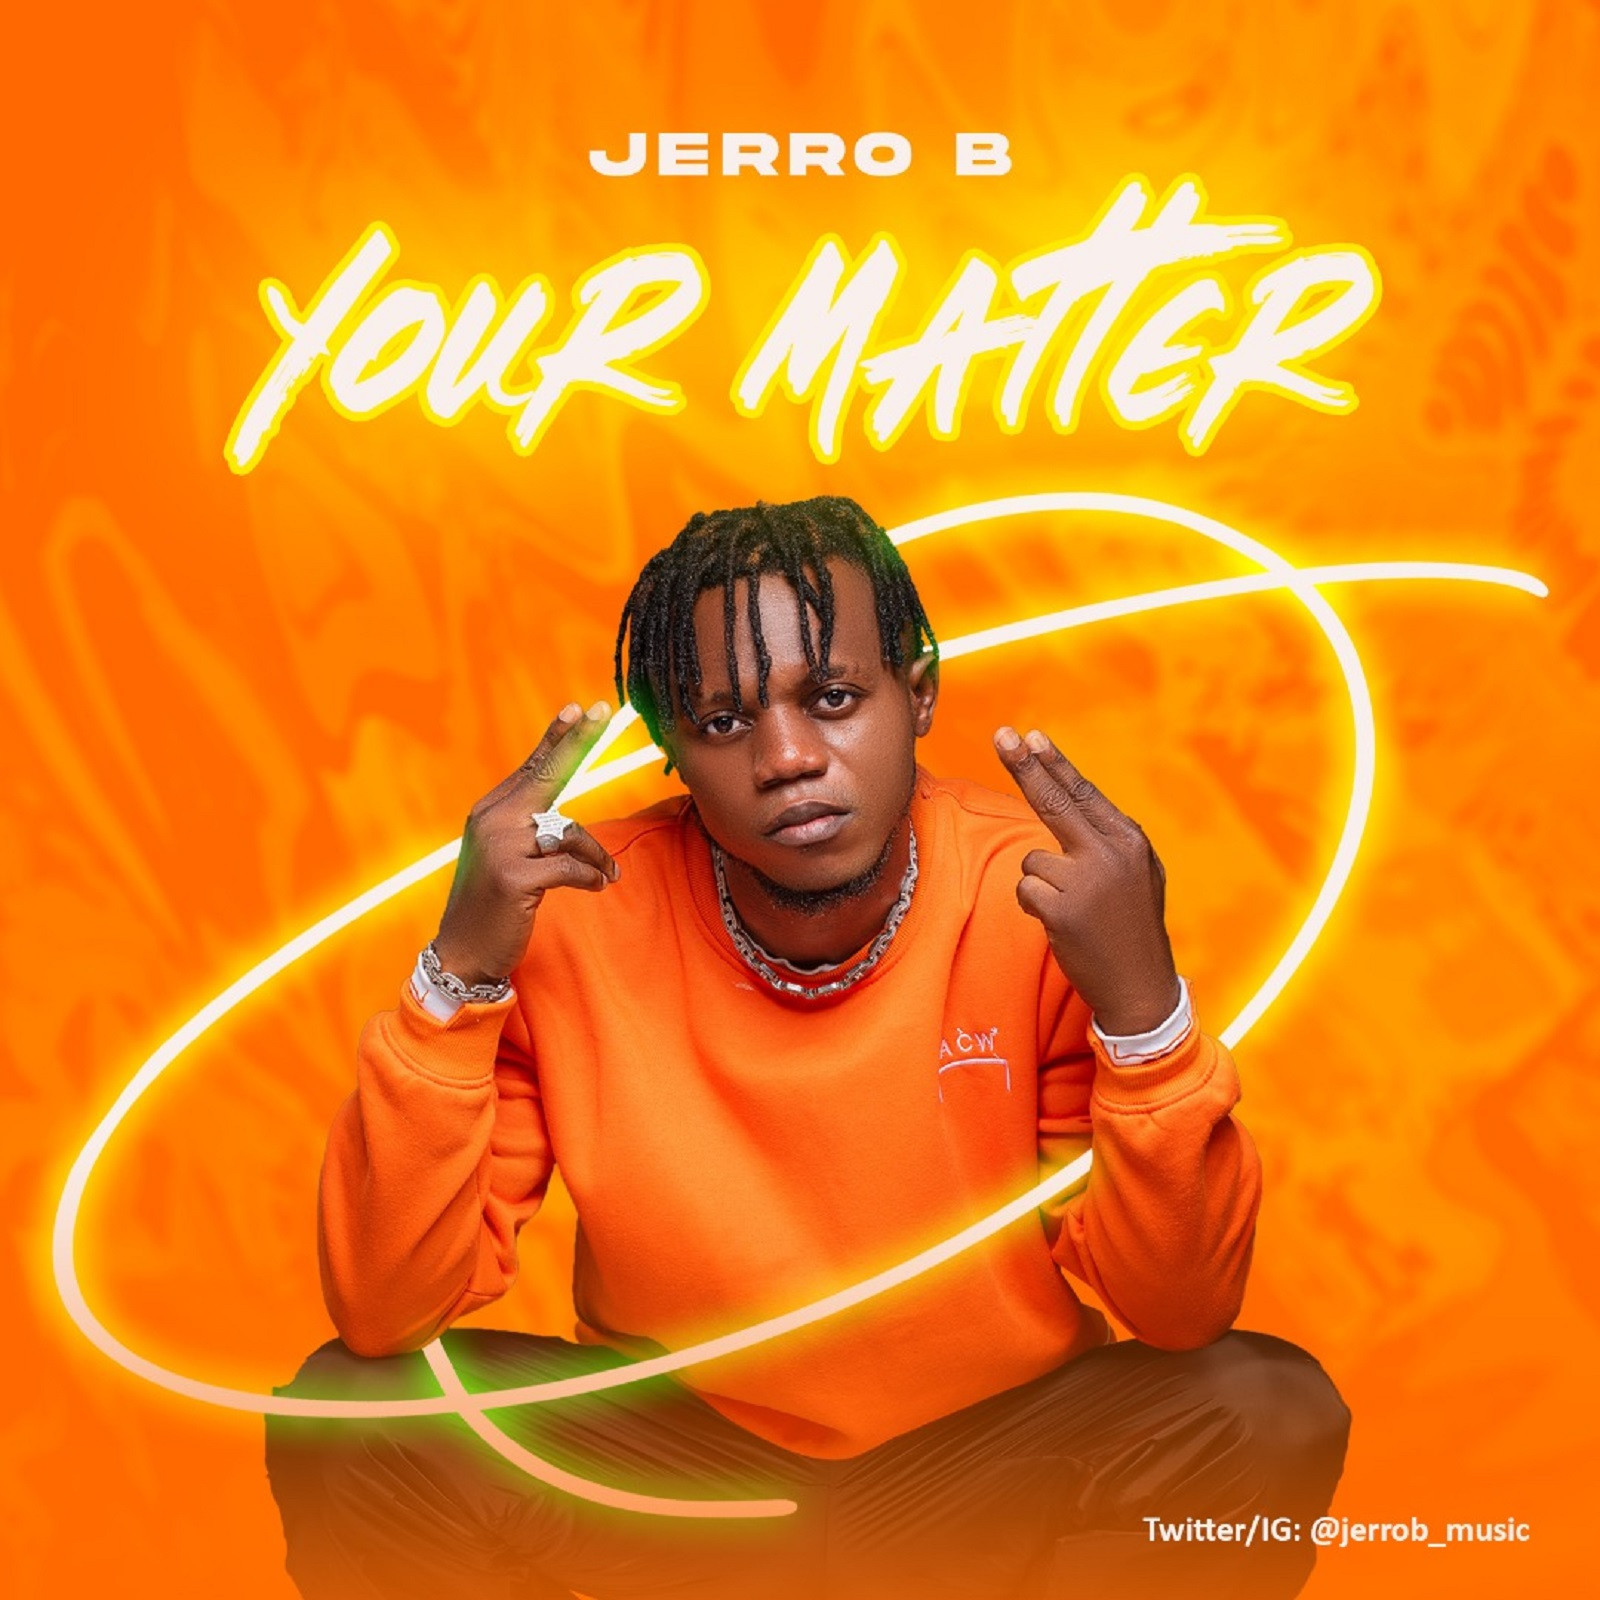 Multi-Talented Singer & Songwriter Jerro B Just Drop Smashing New Record Dubbed Your Matter